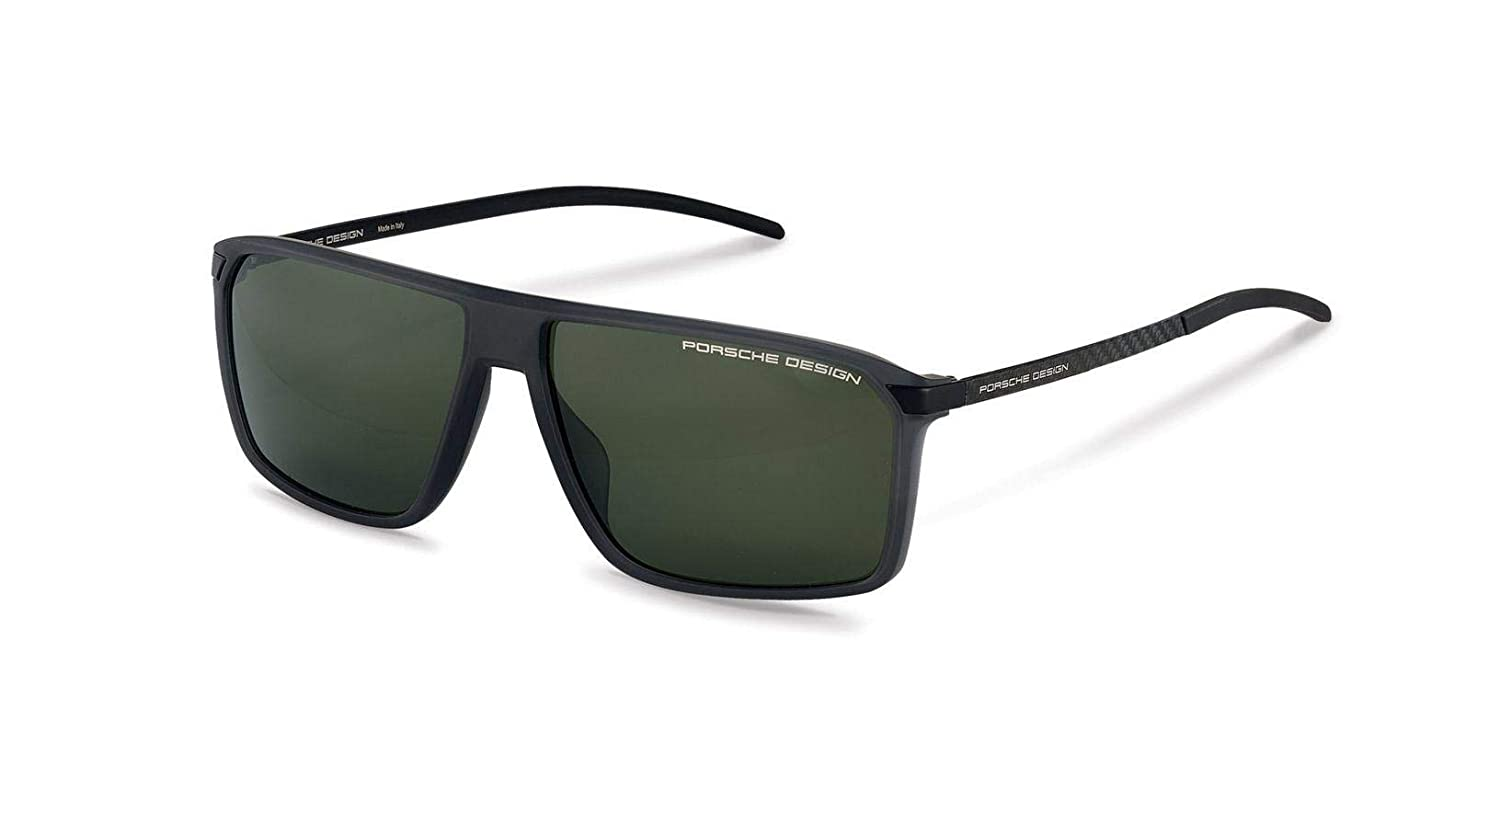 Authentic Porsche Design P 8653 B Grey Polarized Sunglasses